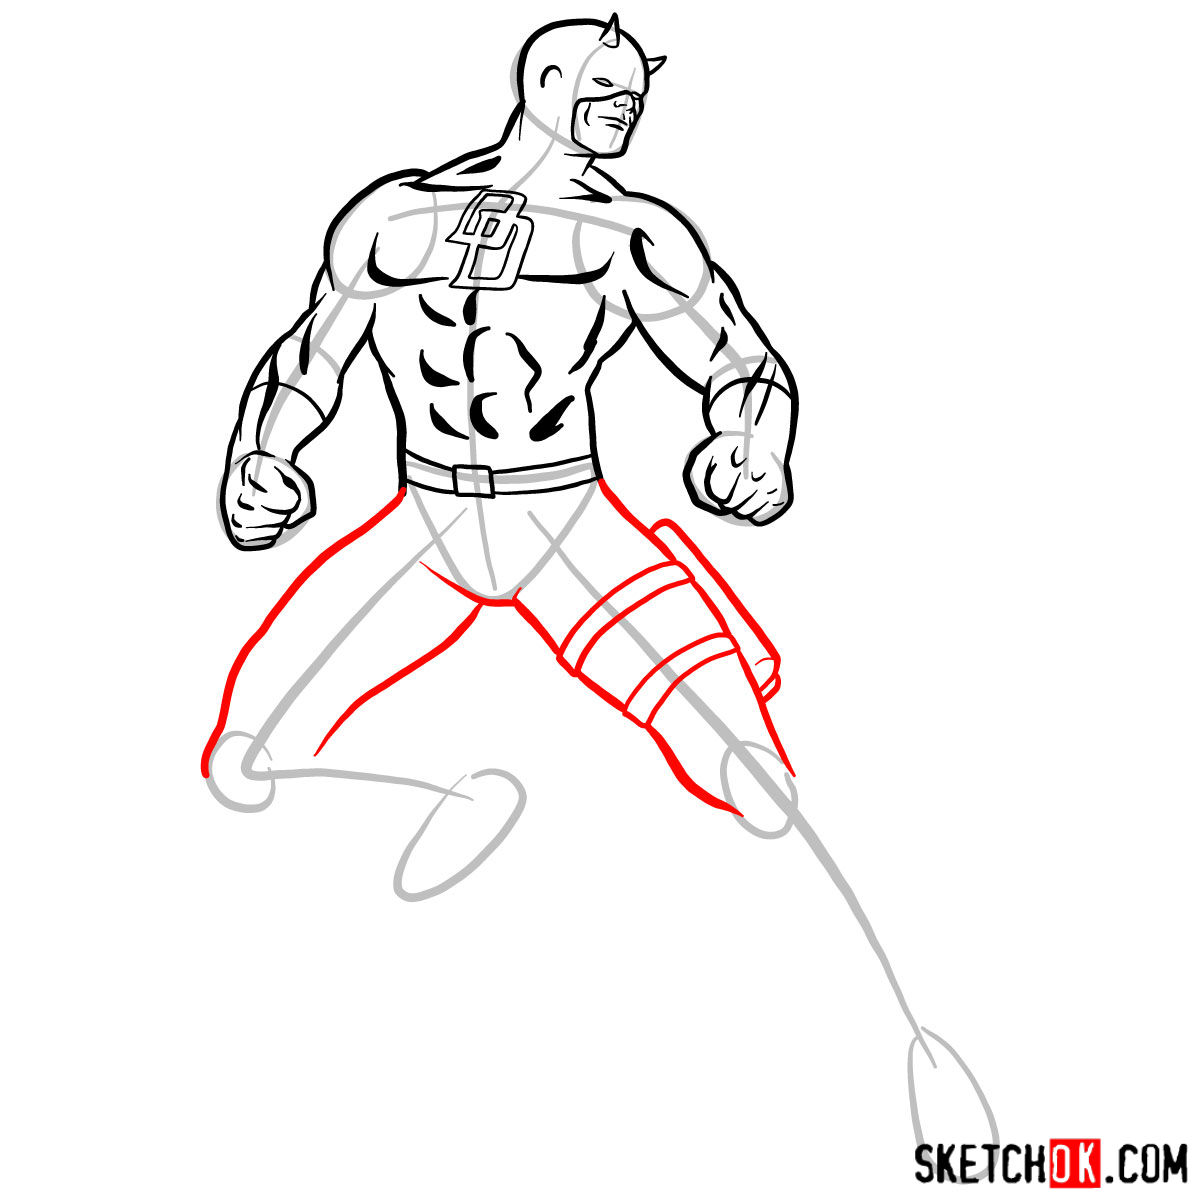 How to draw Daredevil from Marvel - step 10